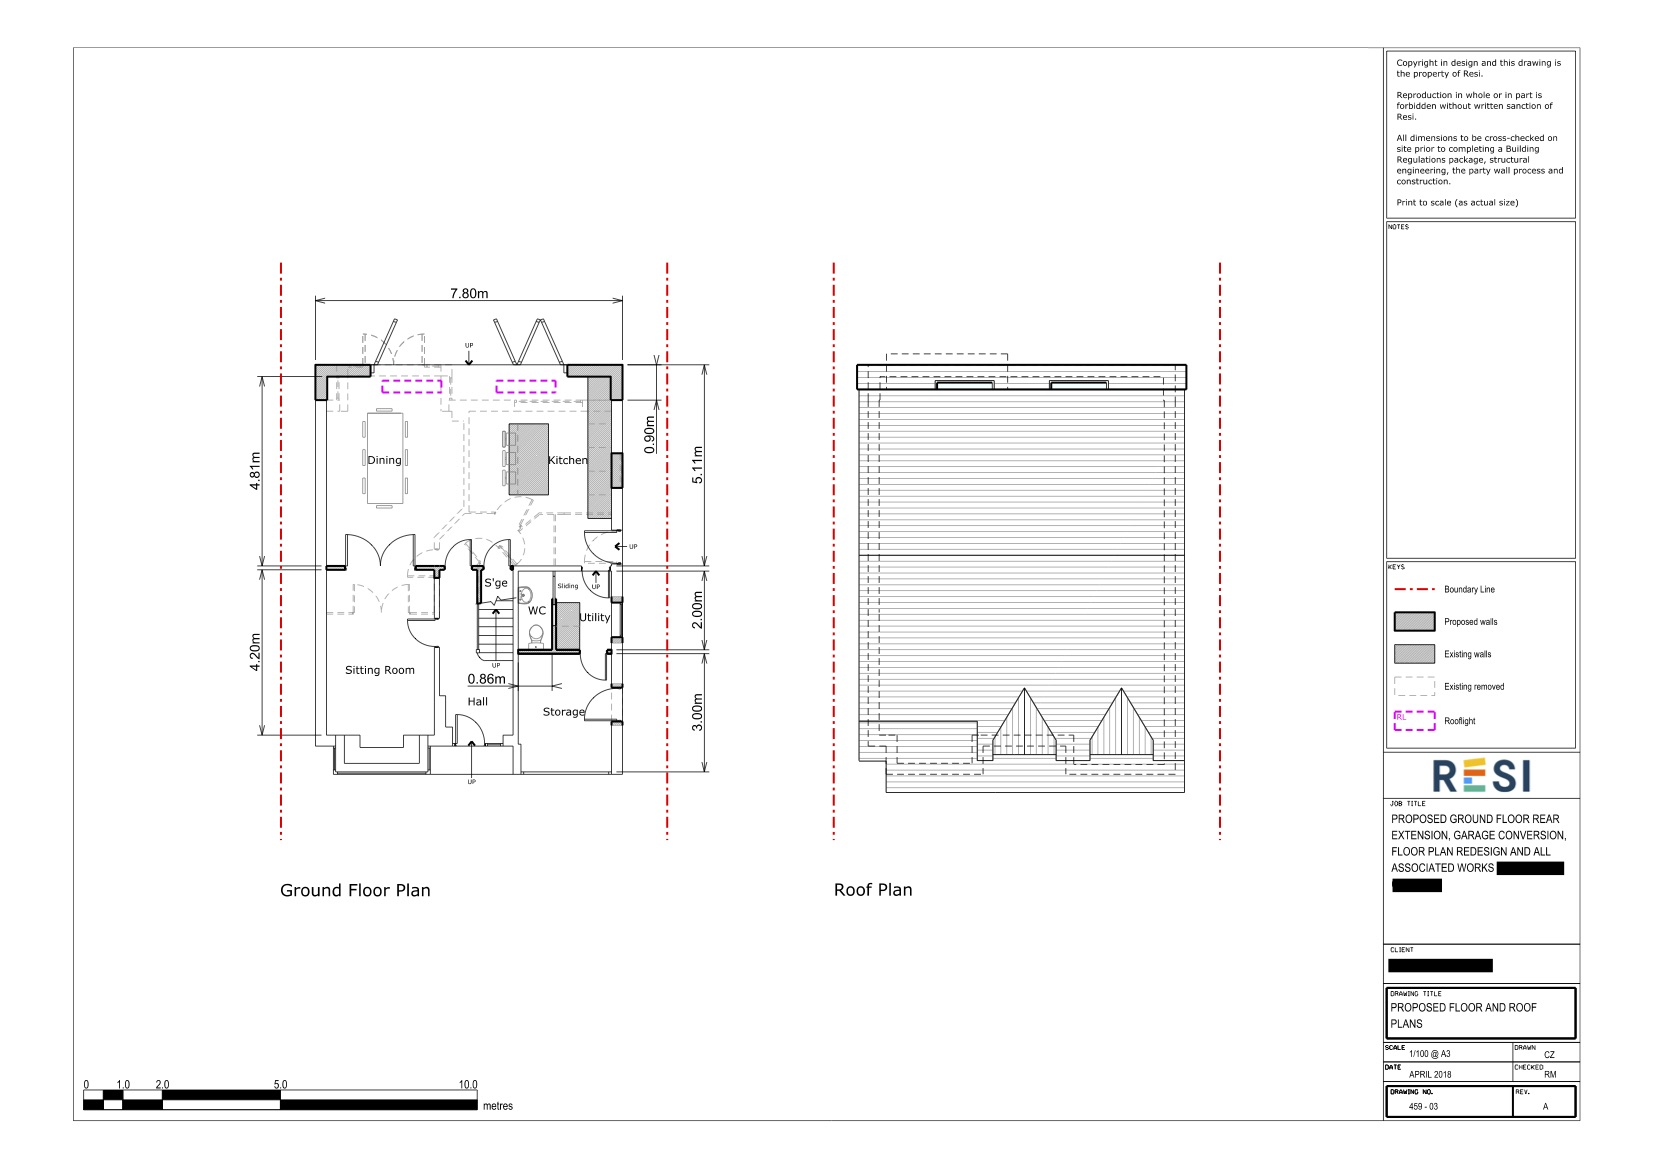 Architectural drawings rev b 4   ground floor plans